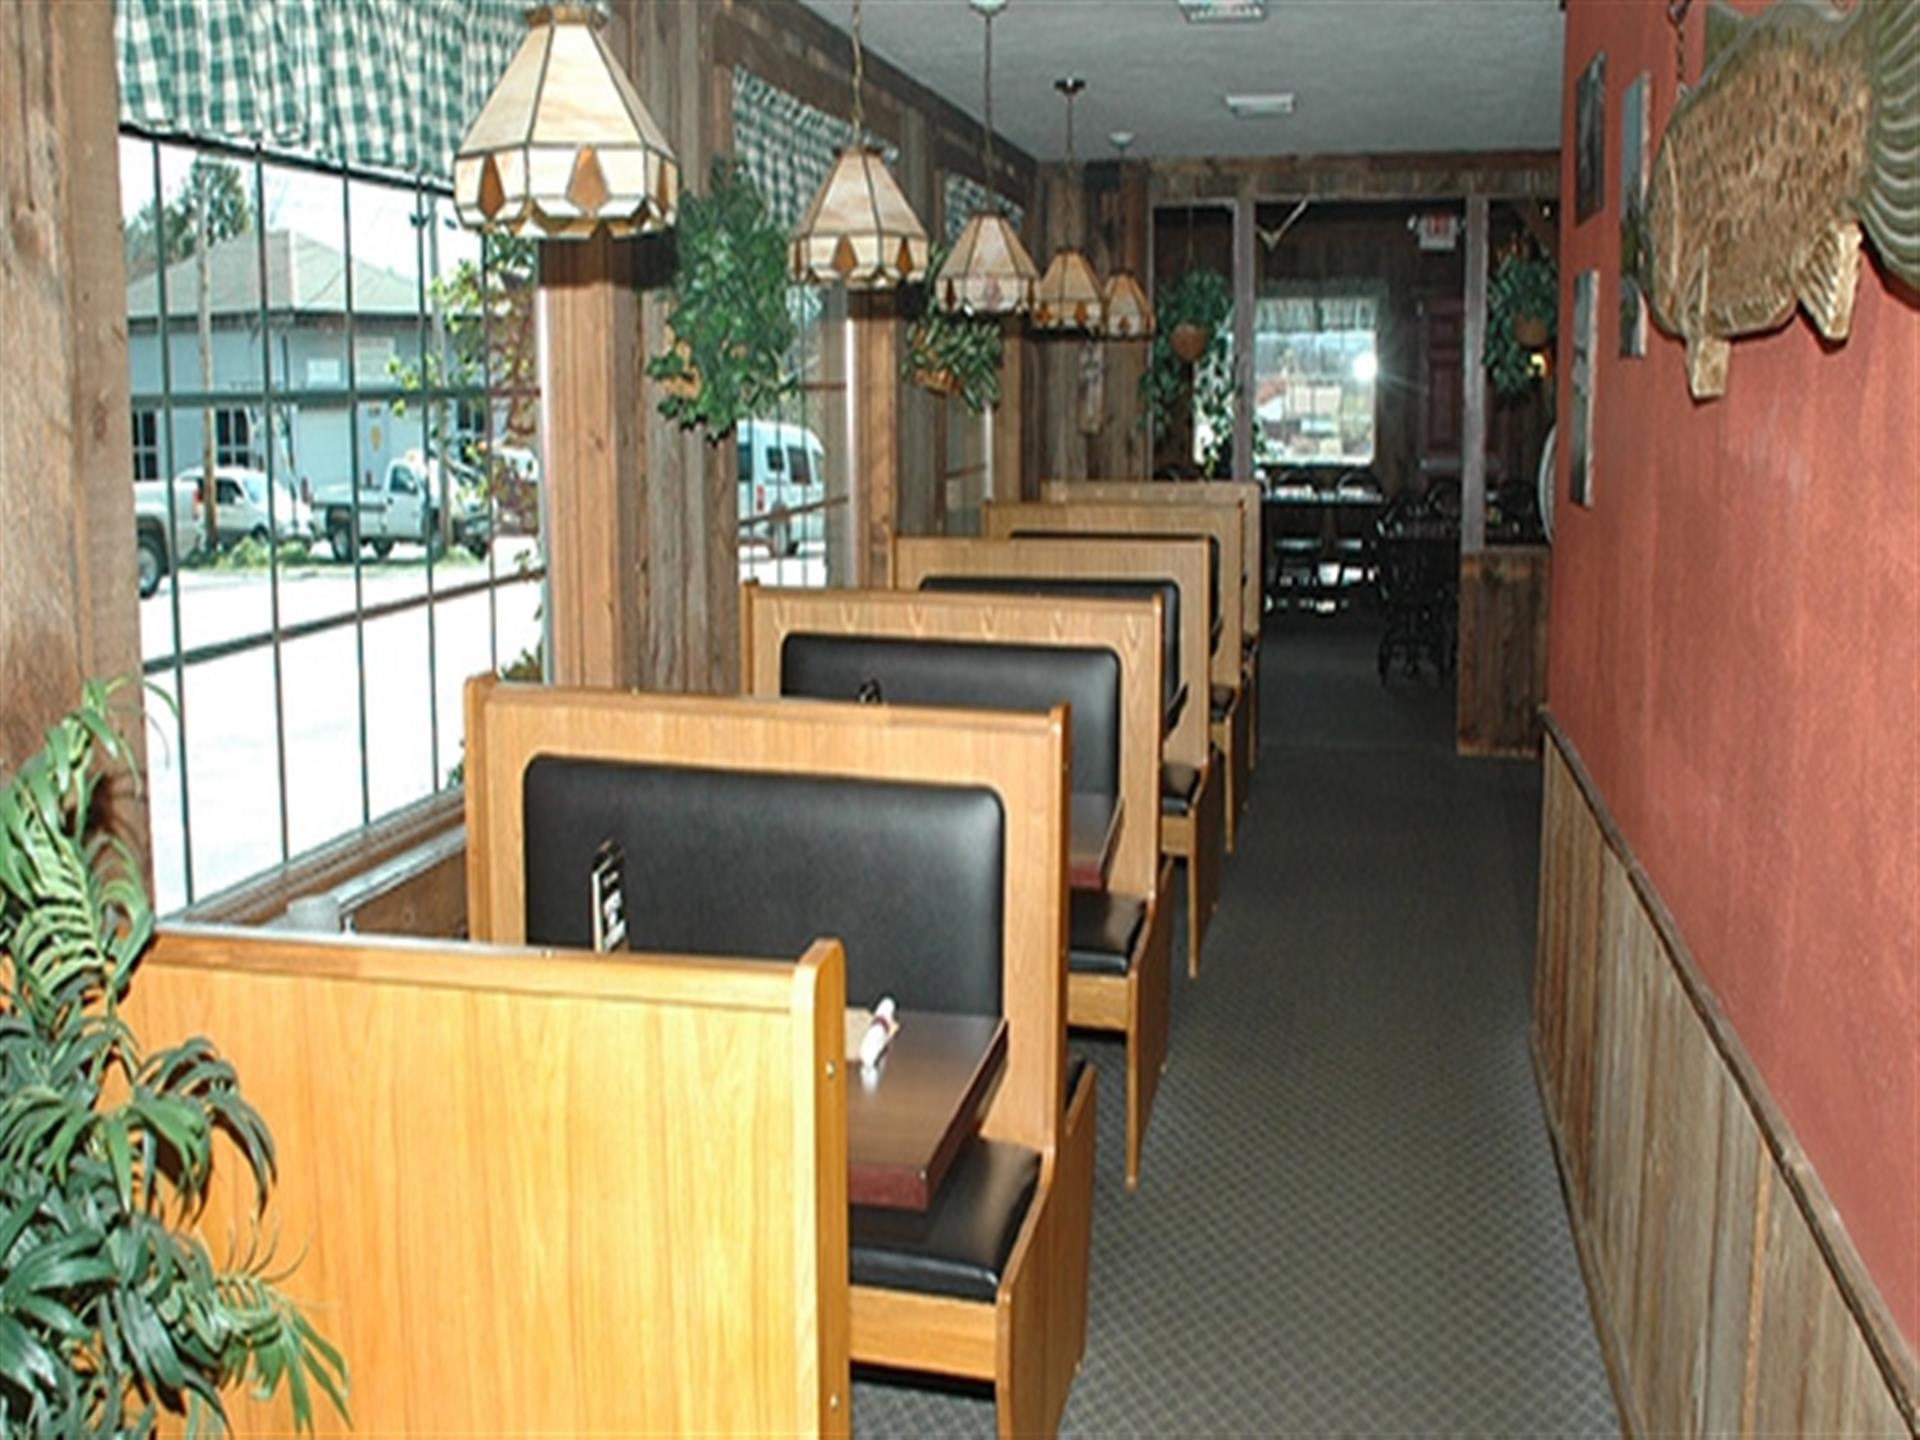 Inside the dining room at Apple Valley Restaurant. Booths by the window.